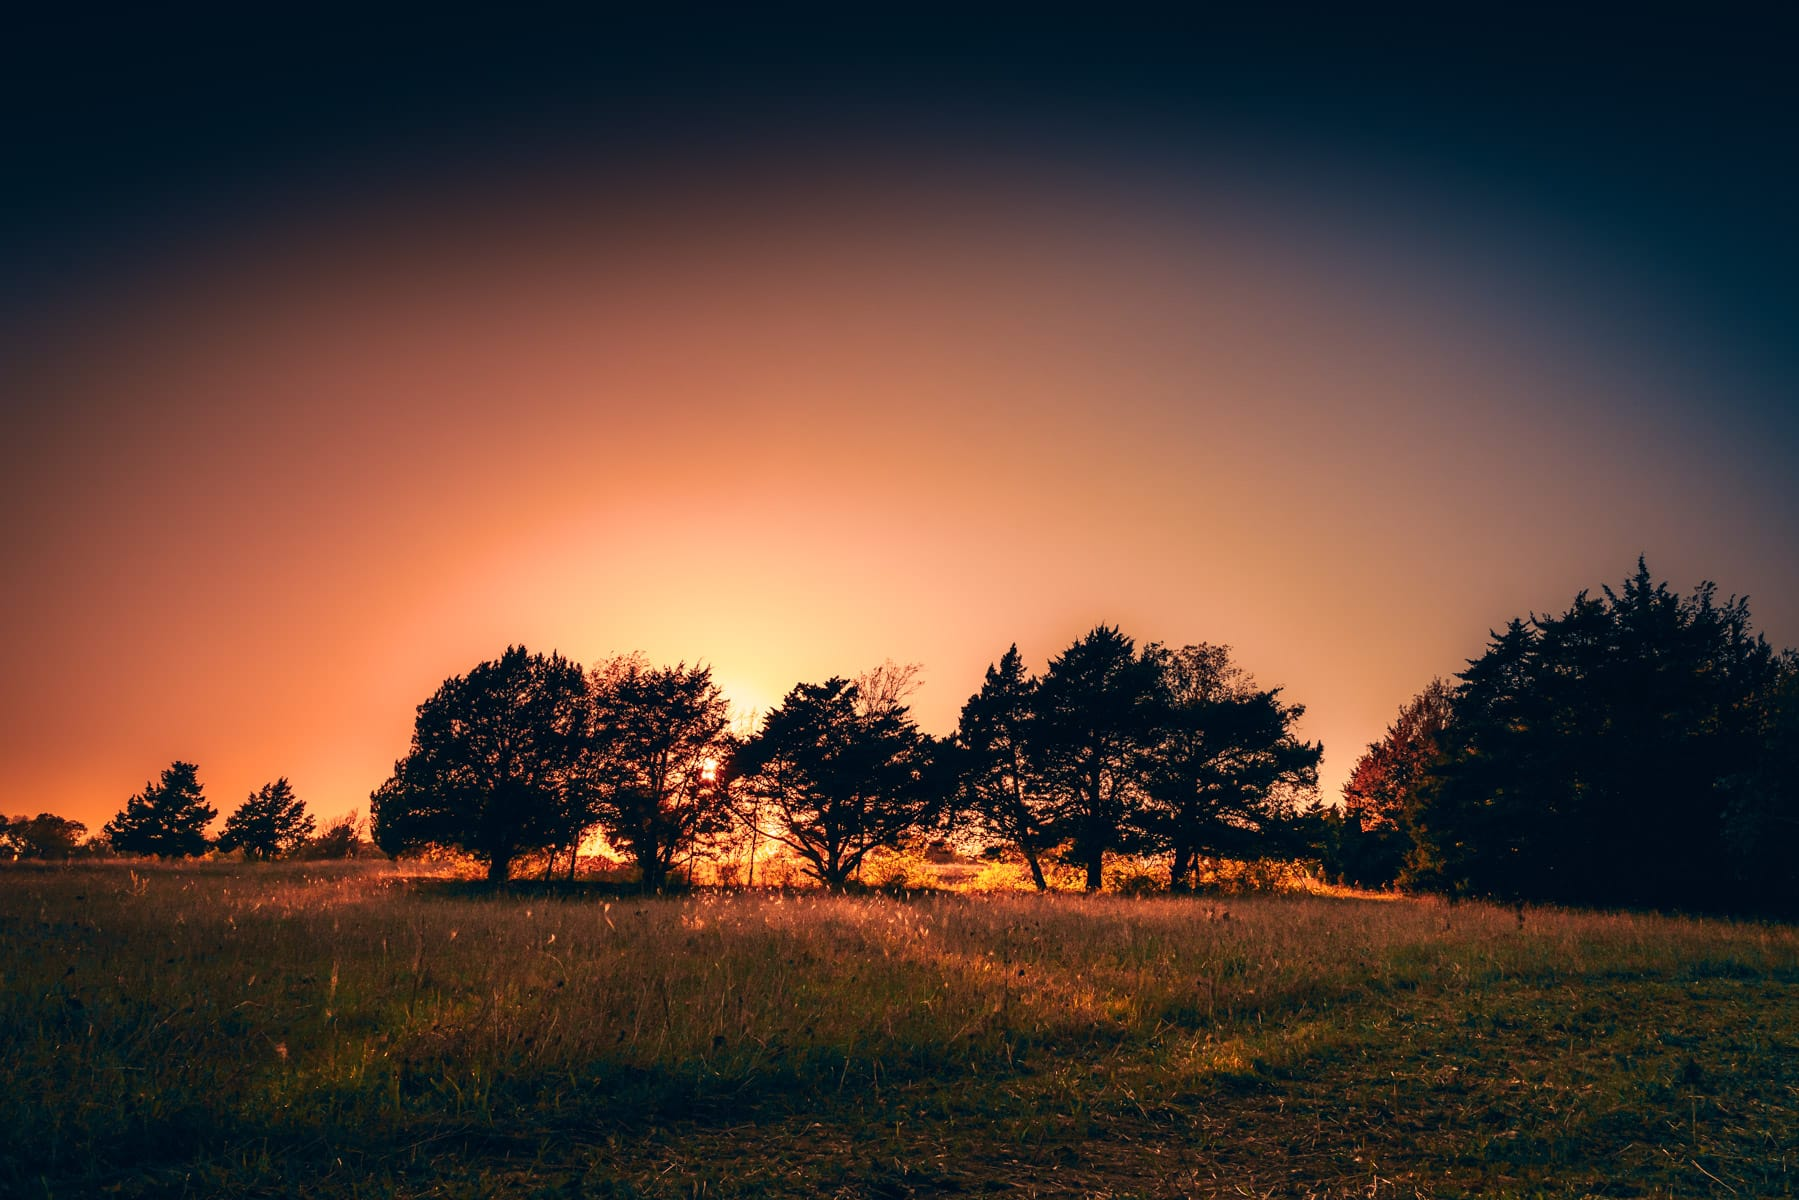 The sun sets on a small grove of trees at McKinney, Texas' Erwin Park.